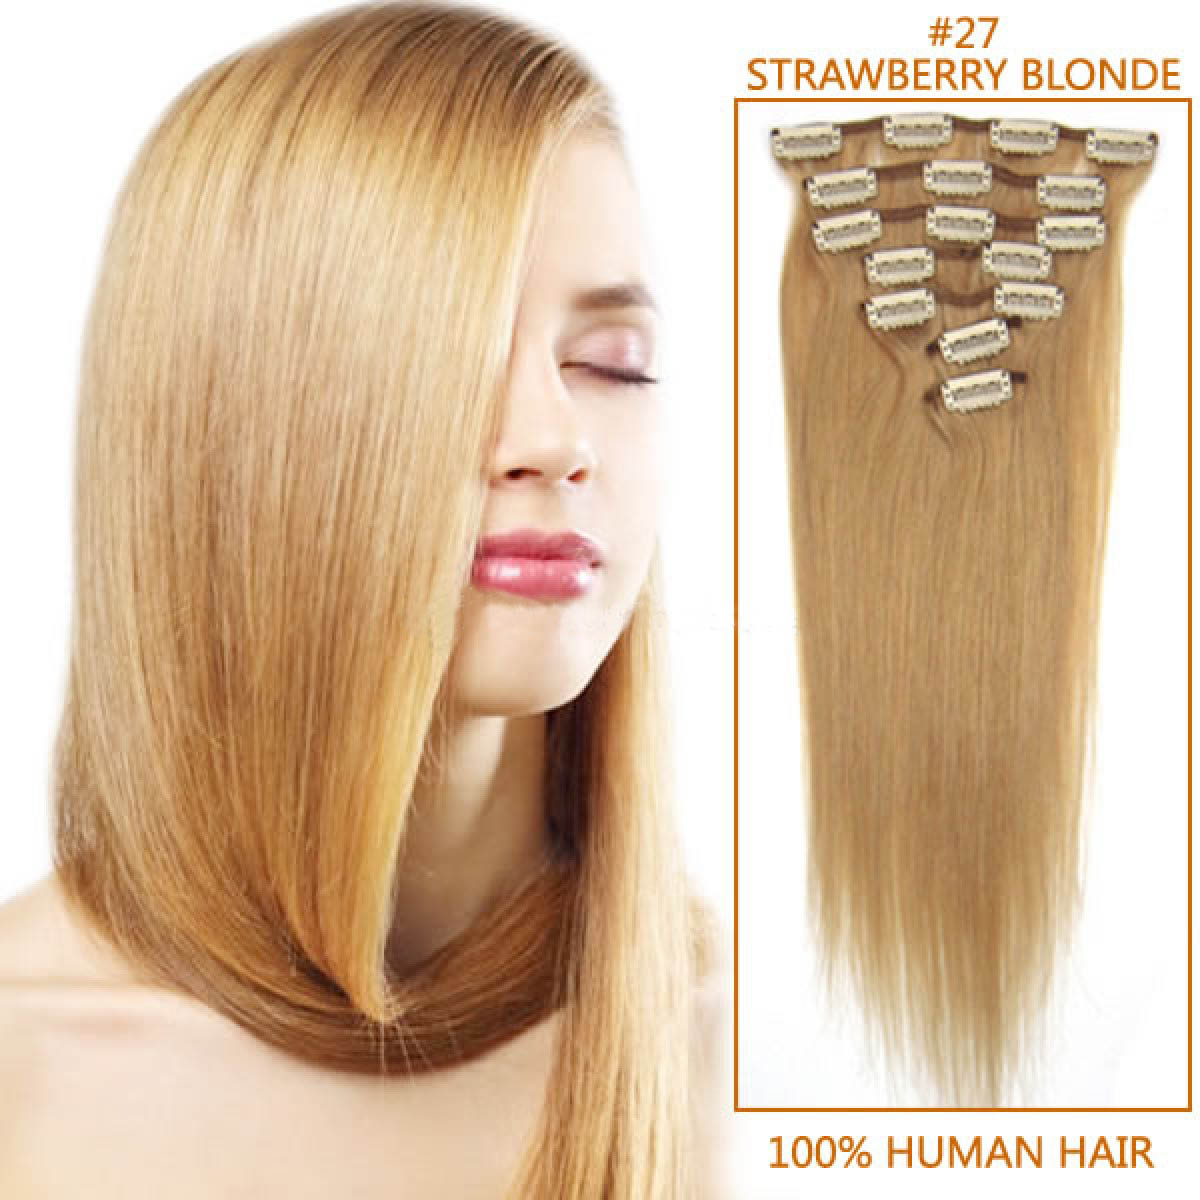 26 Inch 27 Strawberry Blonde Clip In Remy Human Hair